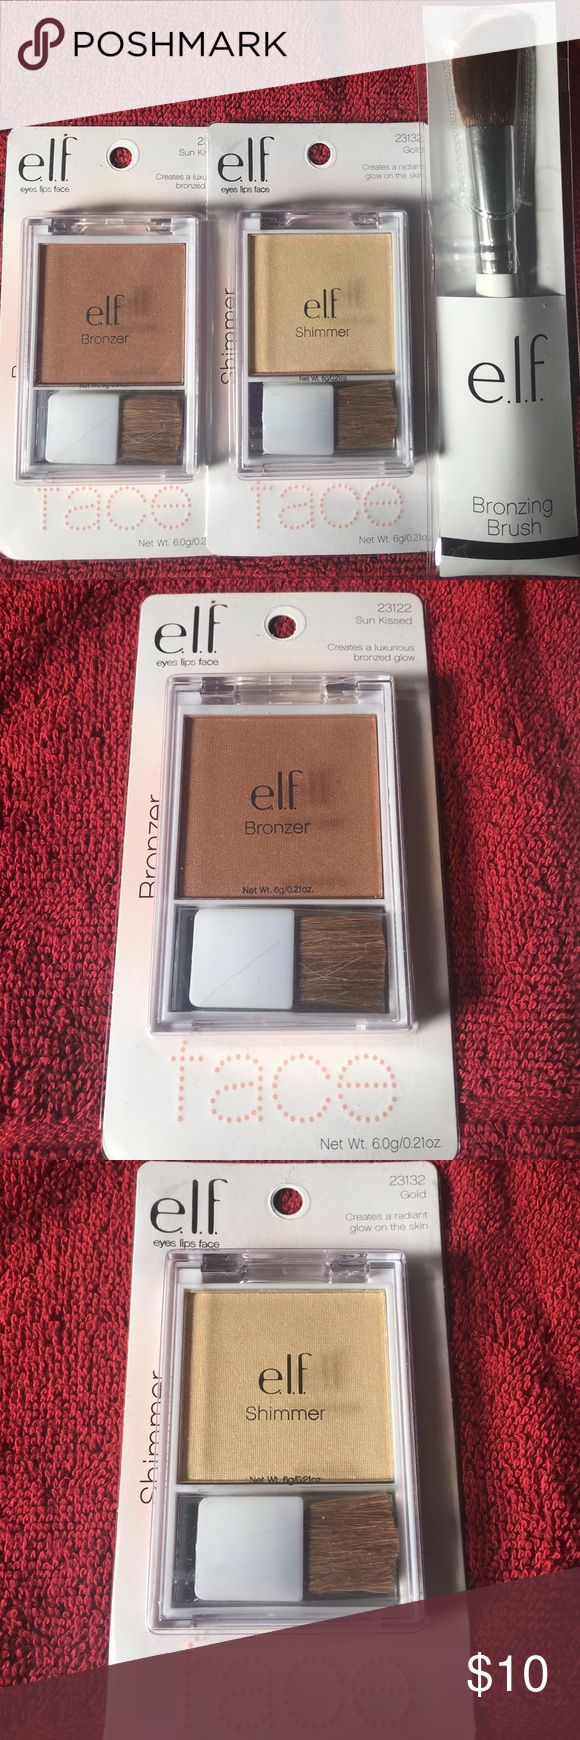 Elf Face Bronze/Highlight Bundle Bundle includes one Bronzer in Sun Kissed, one Shimmer Highlight in Gold, and one Bronzing Brush. All brand new in package. ELF Makeup